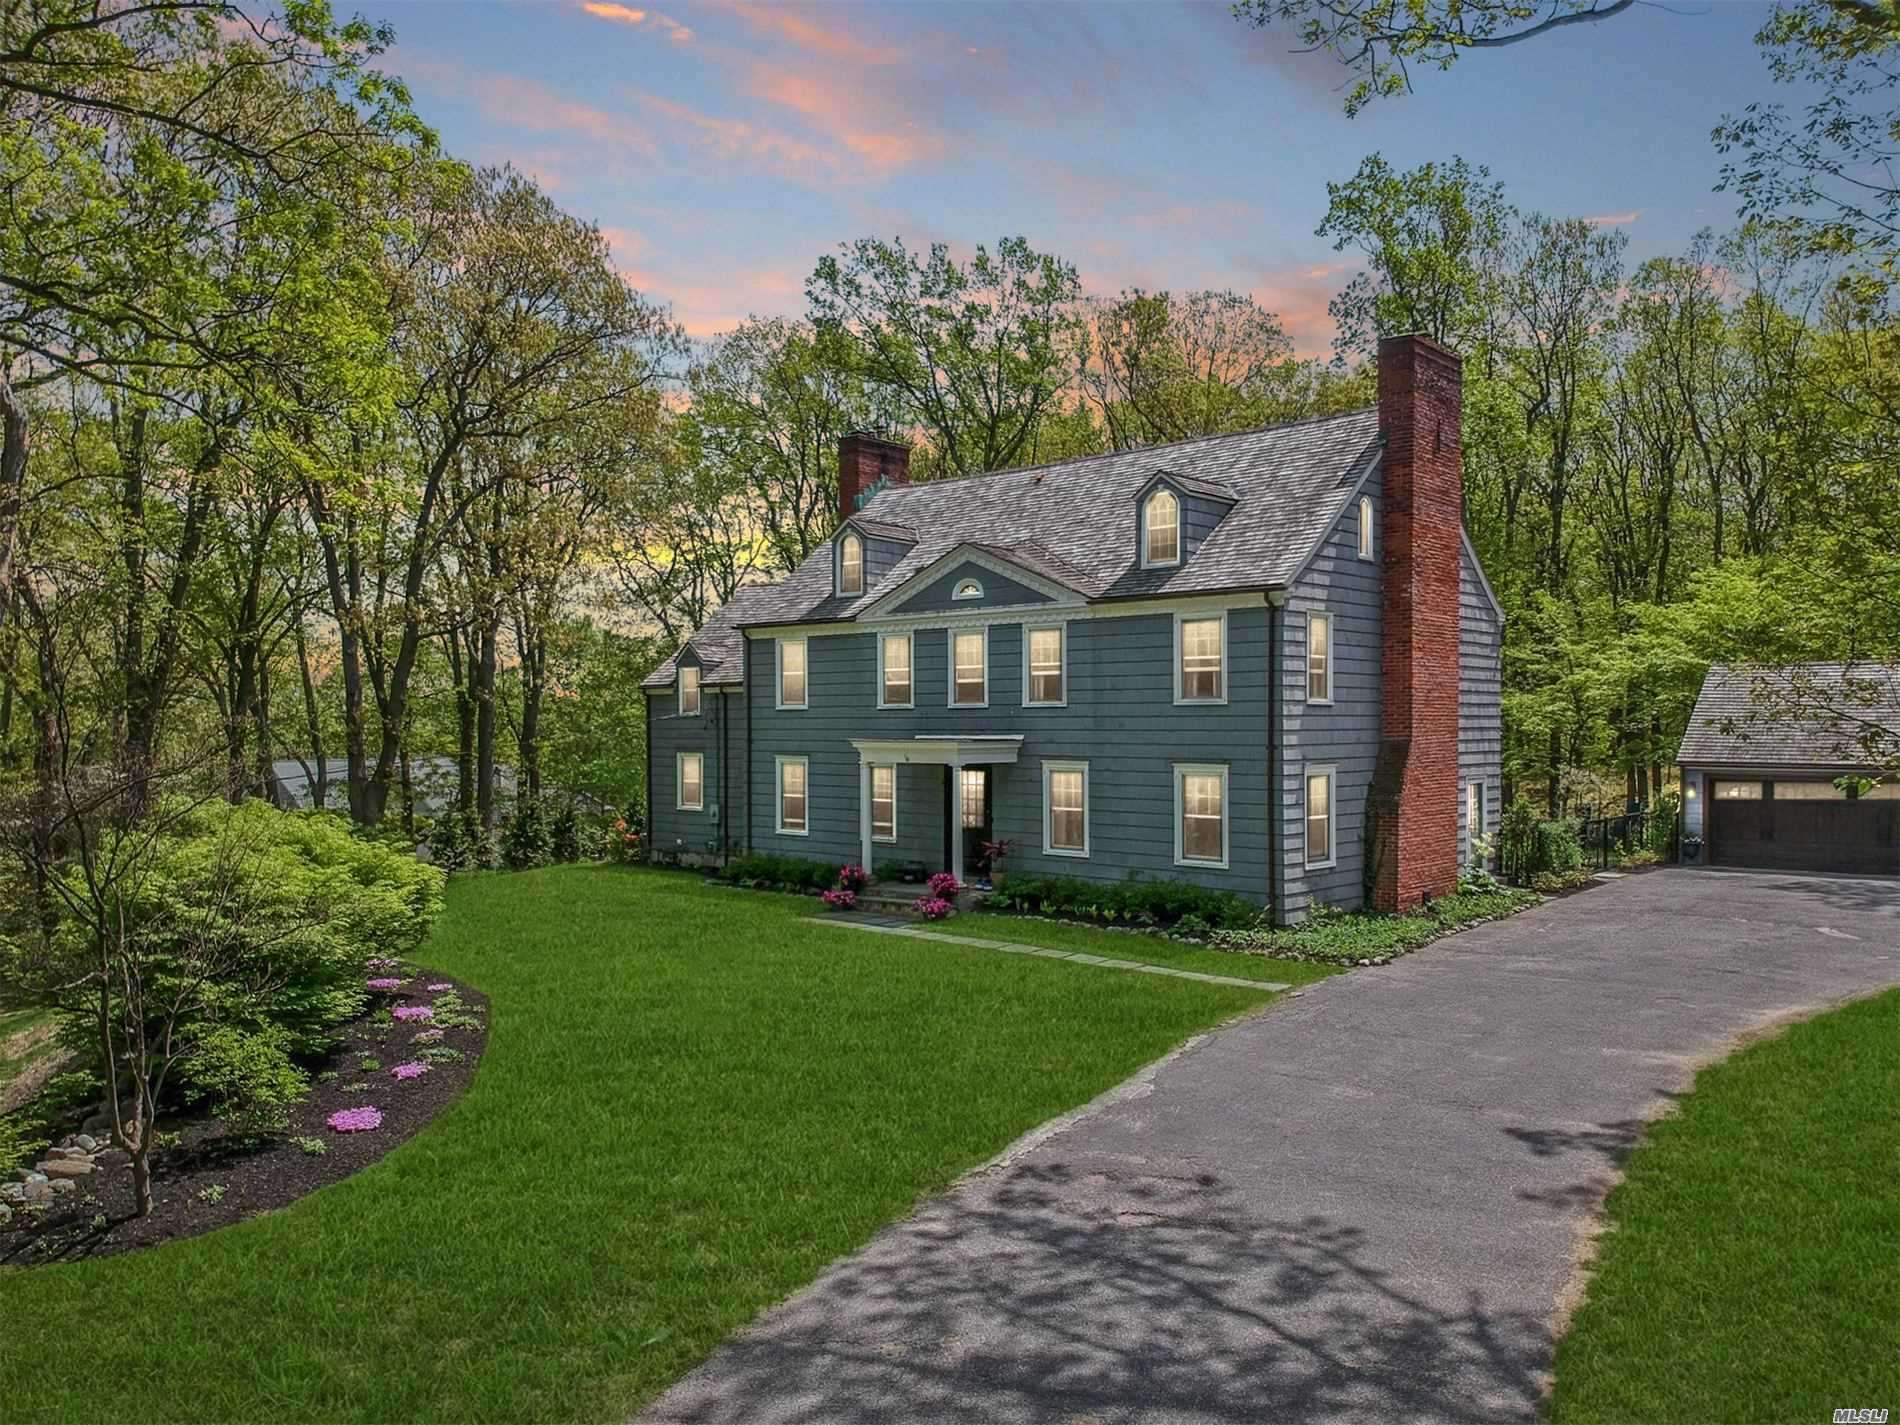 Historic Charm Abounds In This Meticulous And Timeless Restoration Of A Traditional Colonial Classic. Formerly Part Of The Stehli Estate, This Home Was Moved To Its Current Locale In The 1960'S With A New Foundation. Everything Renovated In The Last 5 Years, Kitchen Reno In 2017. Plenty Of Space, Traditional Layout, A/G Oil Tank, Fully Fenced. Tax Grievance Filed In 2018.